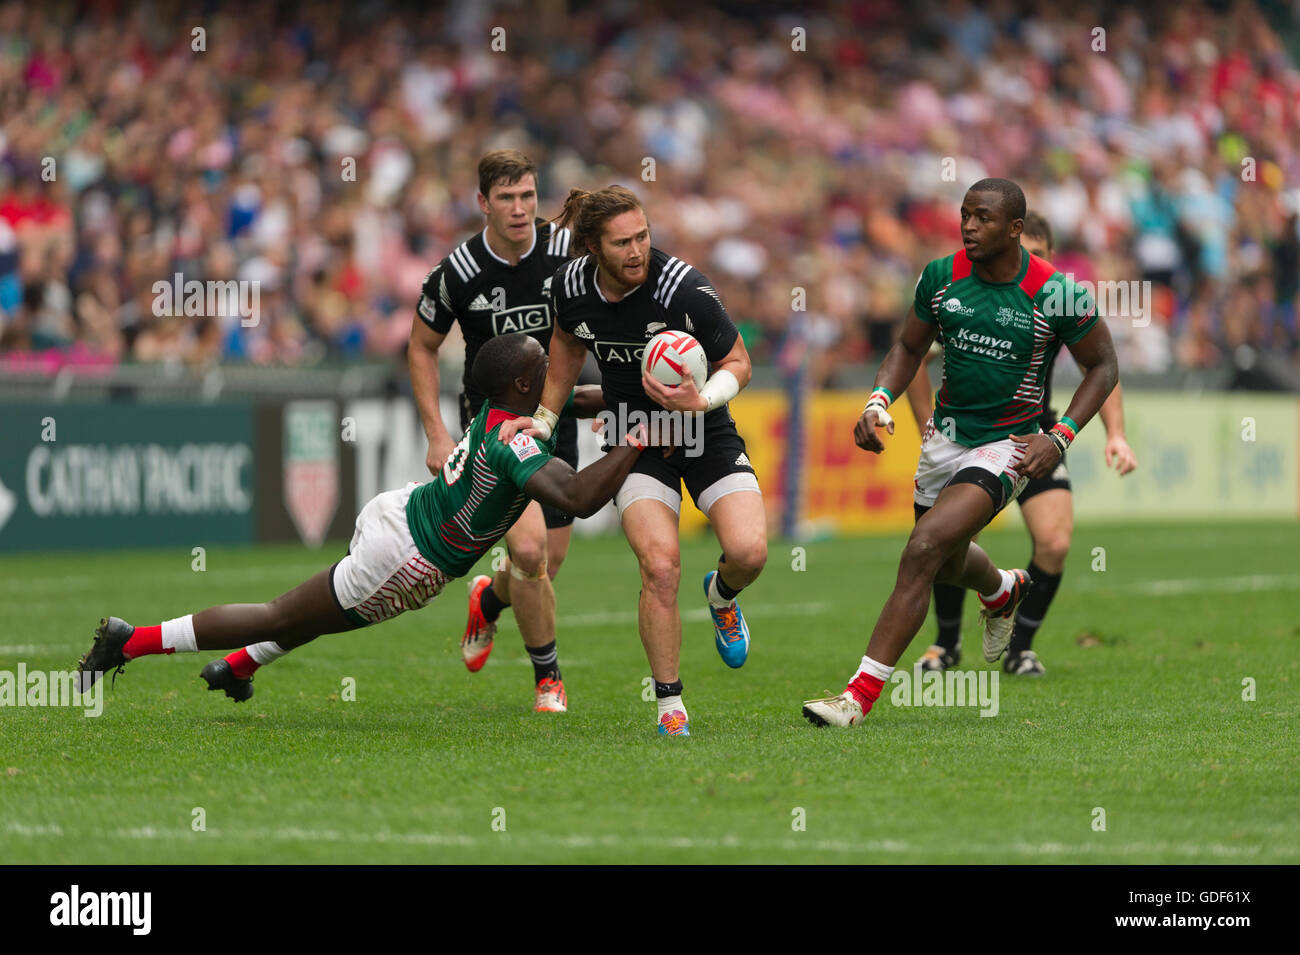 Rugby Sevens action, Gillies Kaka of New Zealand, running with the ball, Hong Kong Stadium, China. - Stock Image